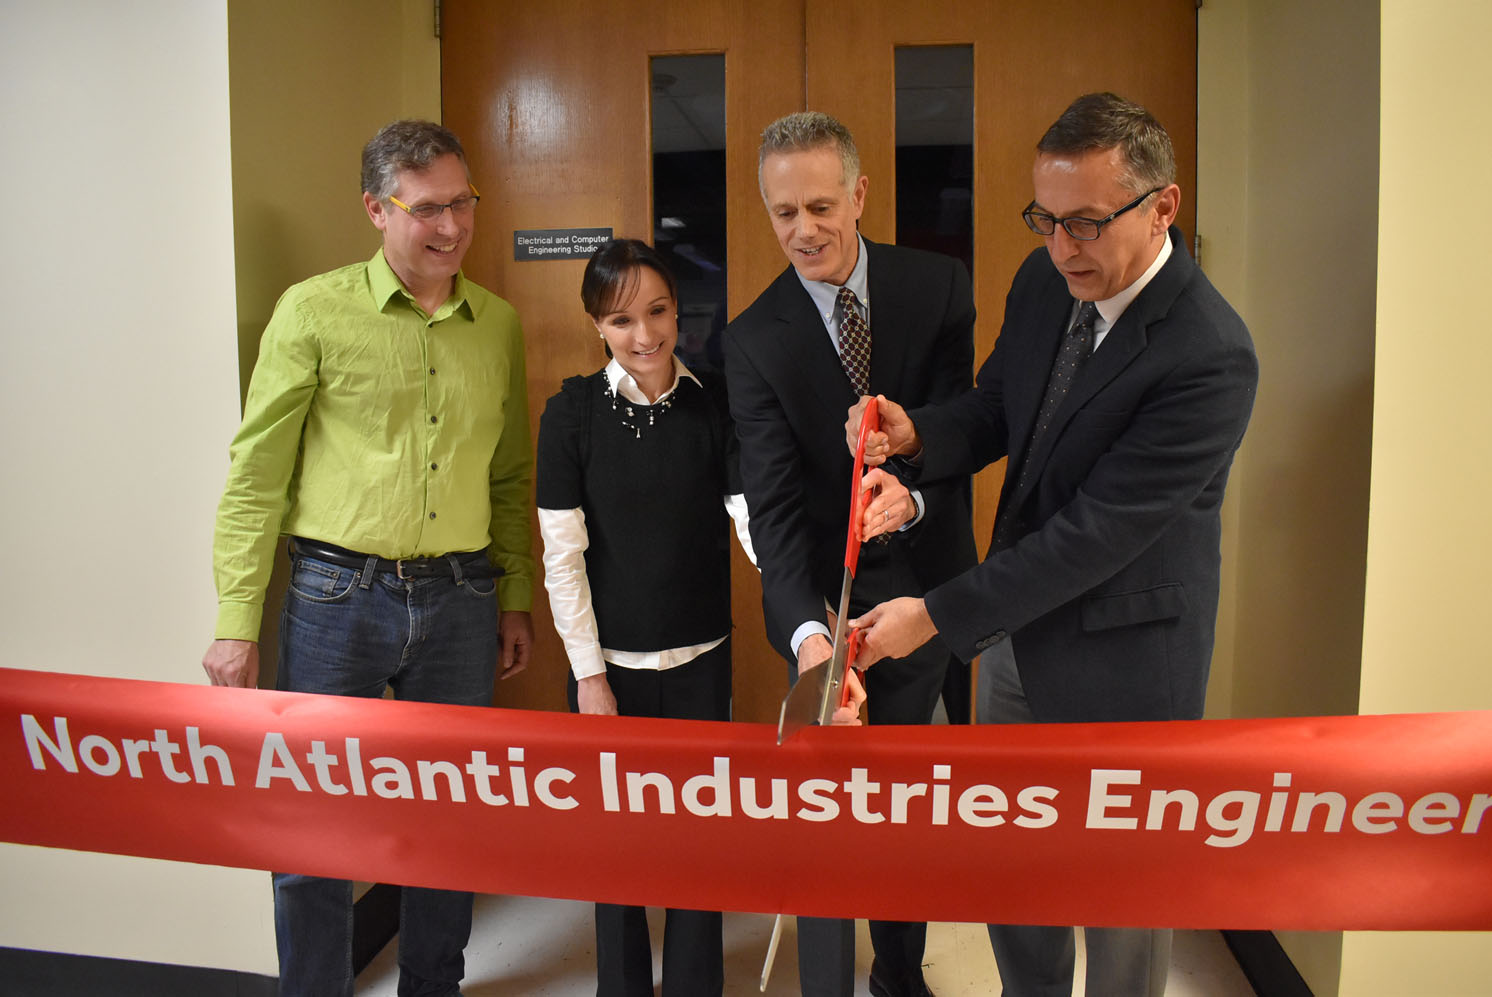 The College of Engineering and Applied Sciences Opens North Atlantic Industries Engineering Teaching Lab